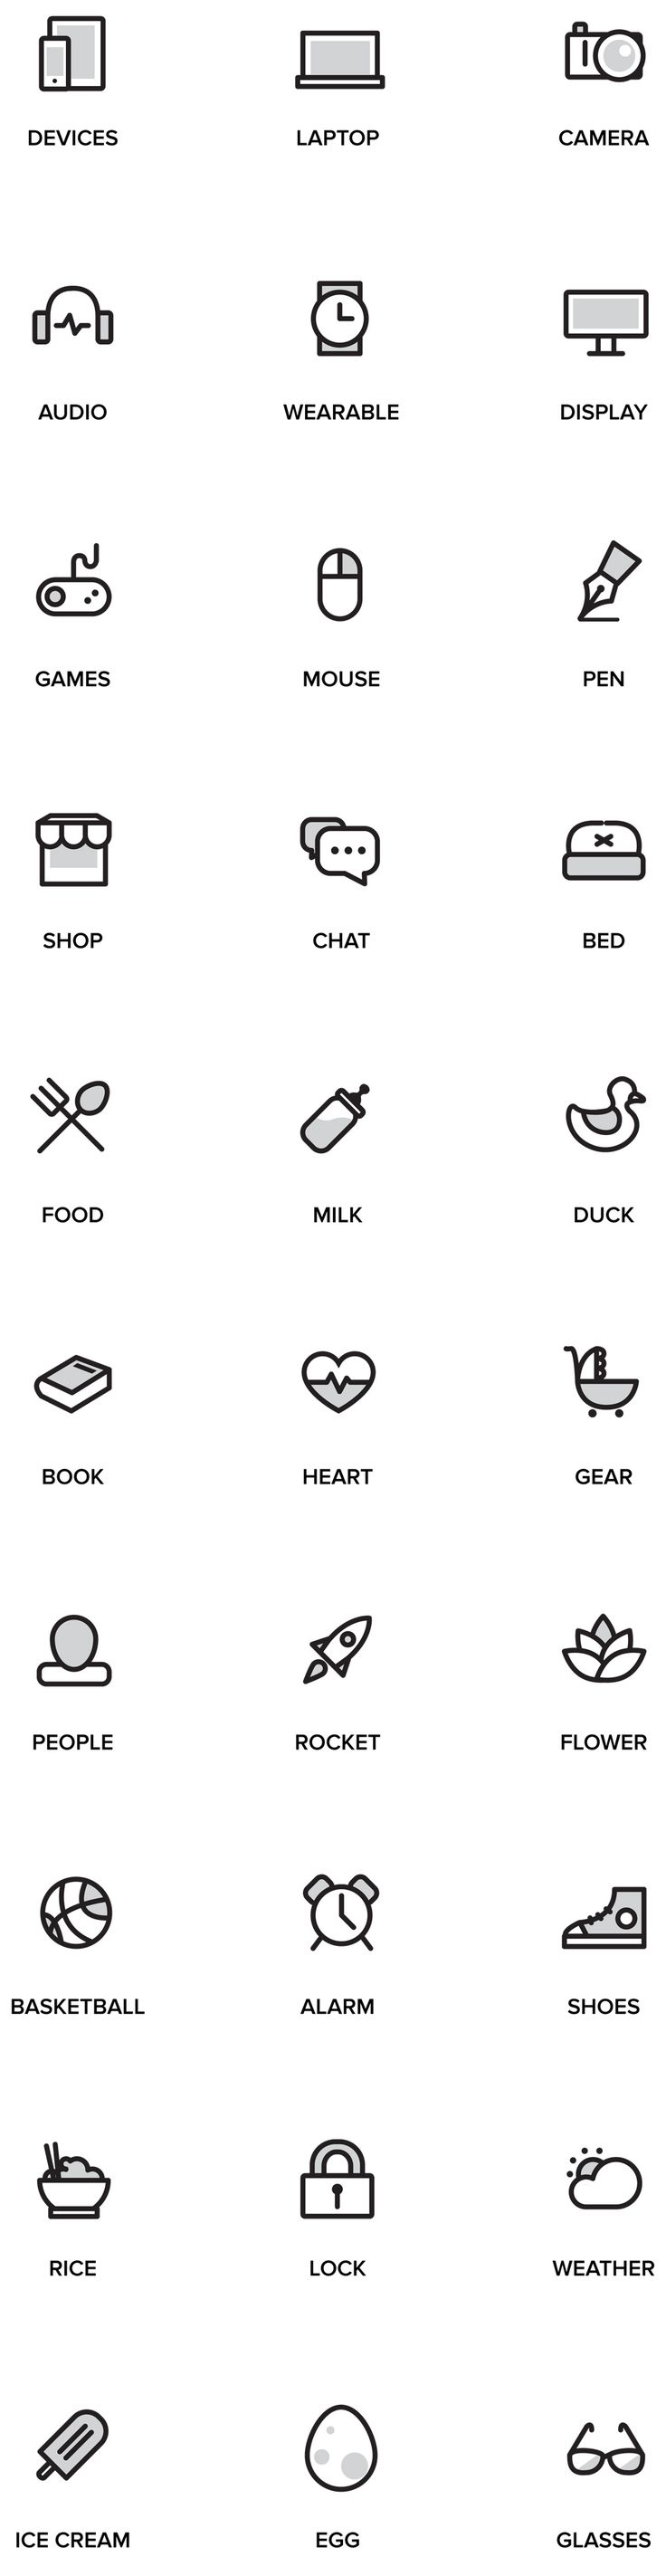 Iconography could be a good way to make it easy for our audience to make choices as to what content they want to access.